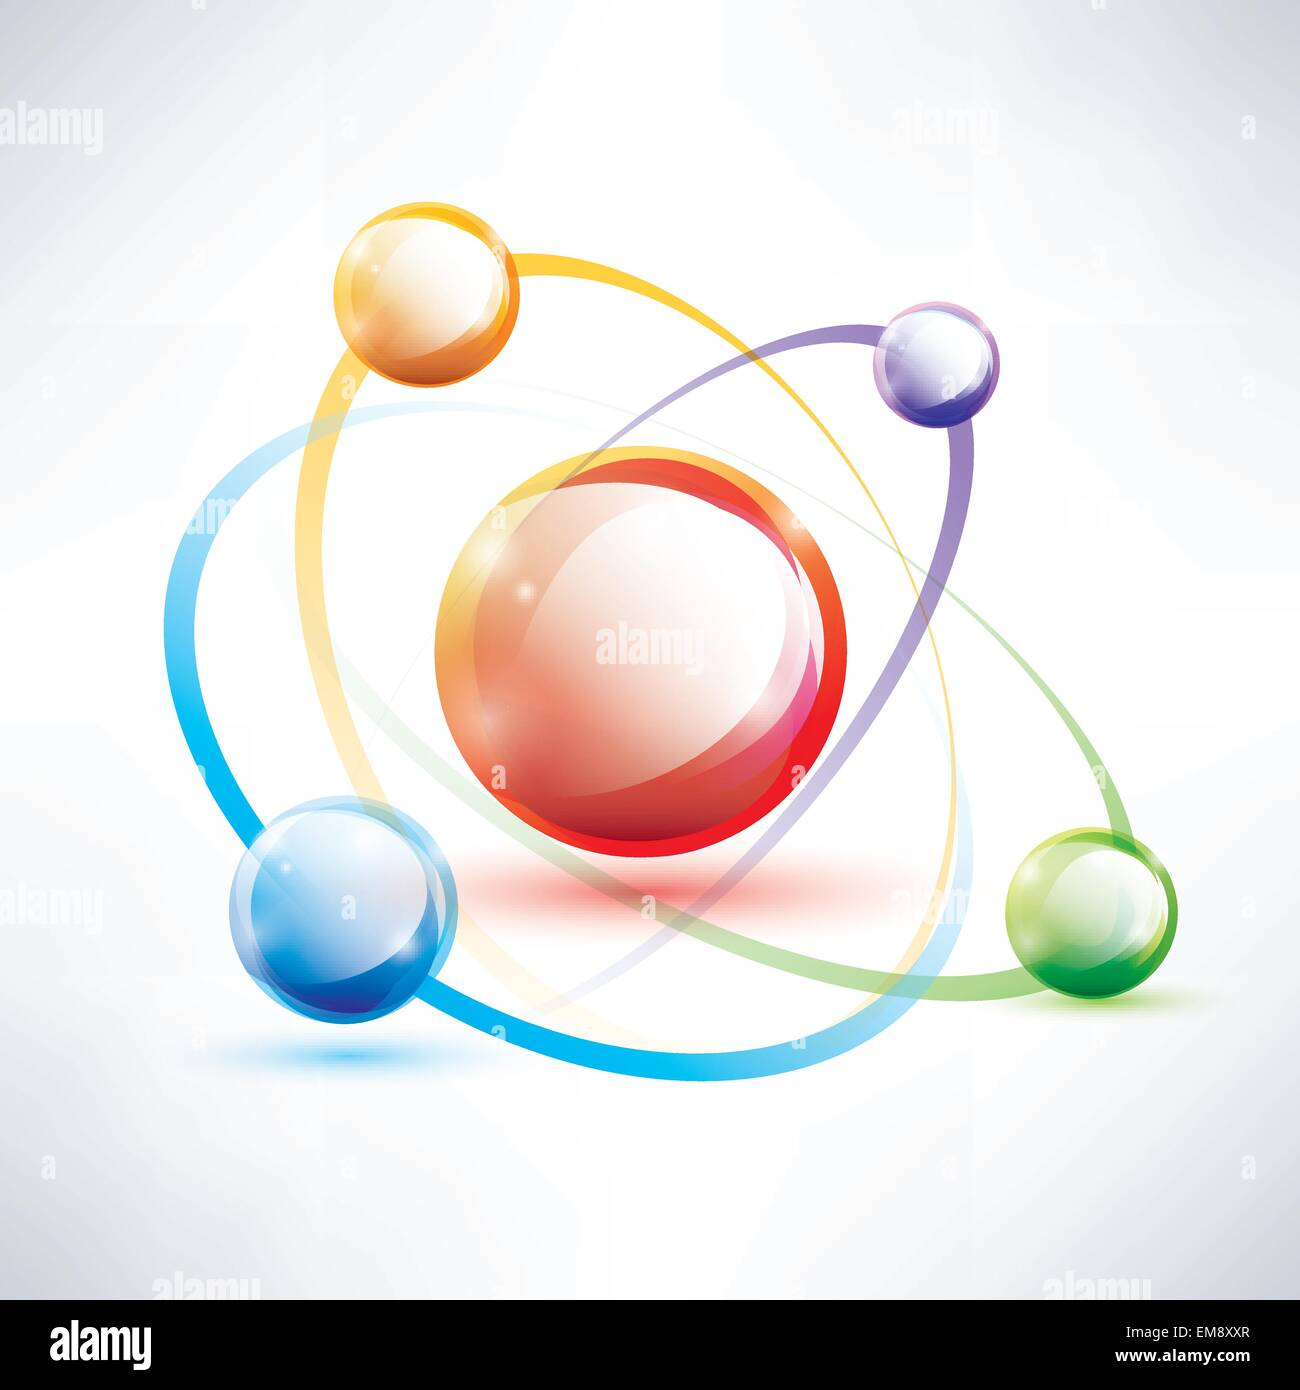 Atom structure abstract glossy icon science and energy concept atom structure abstract glossy icon science and energy concept ccuart